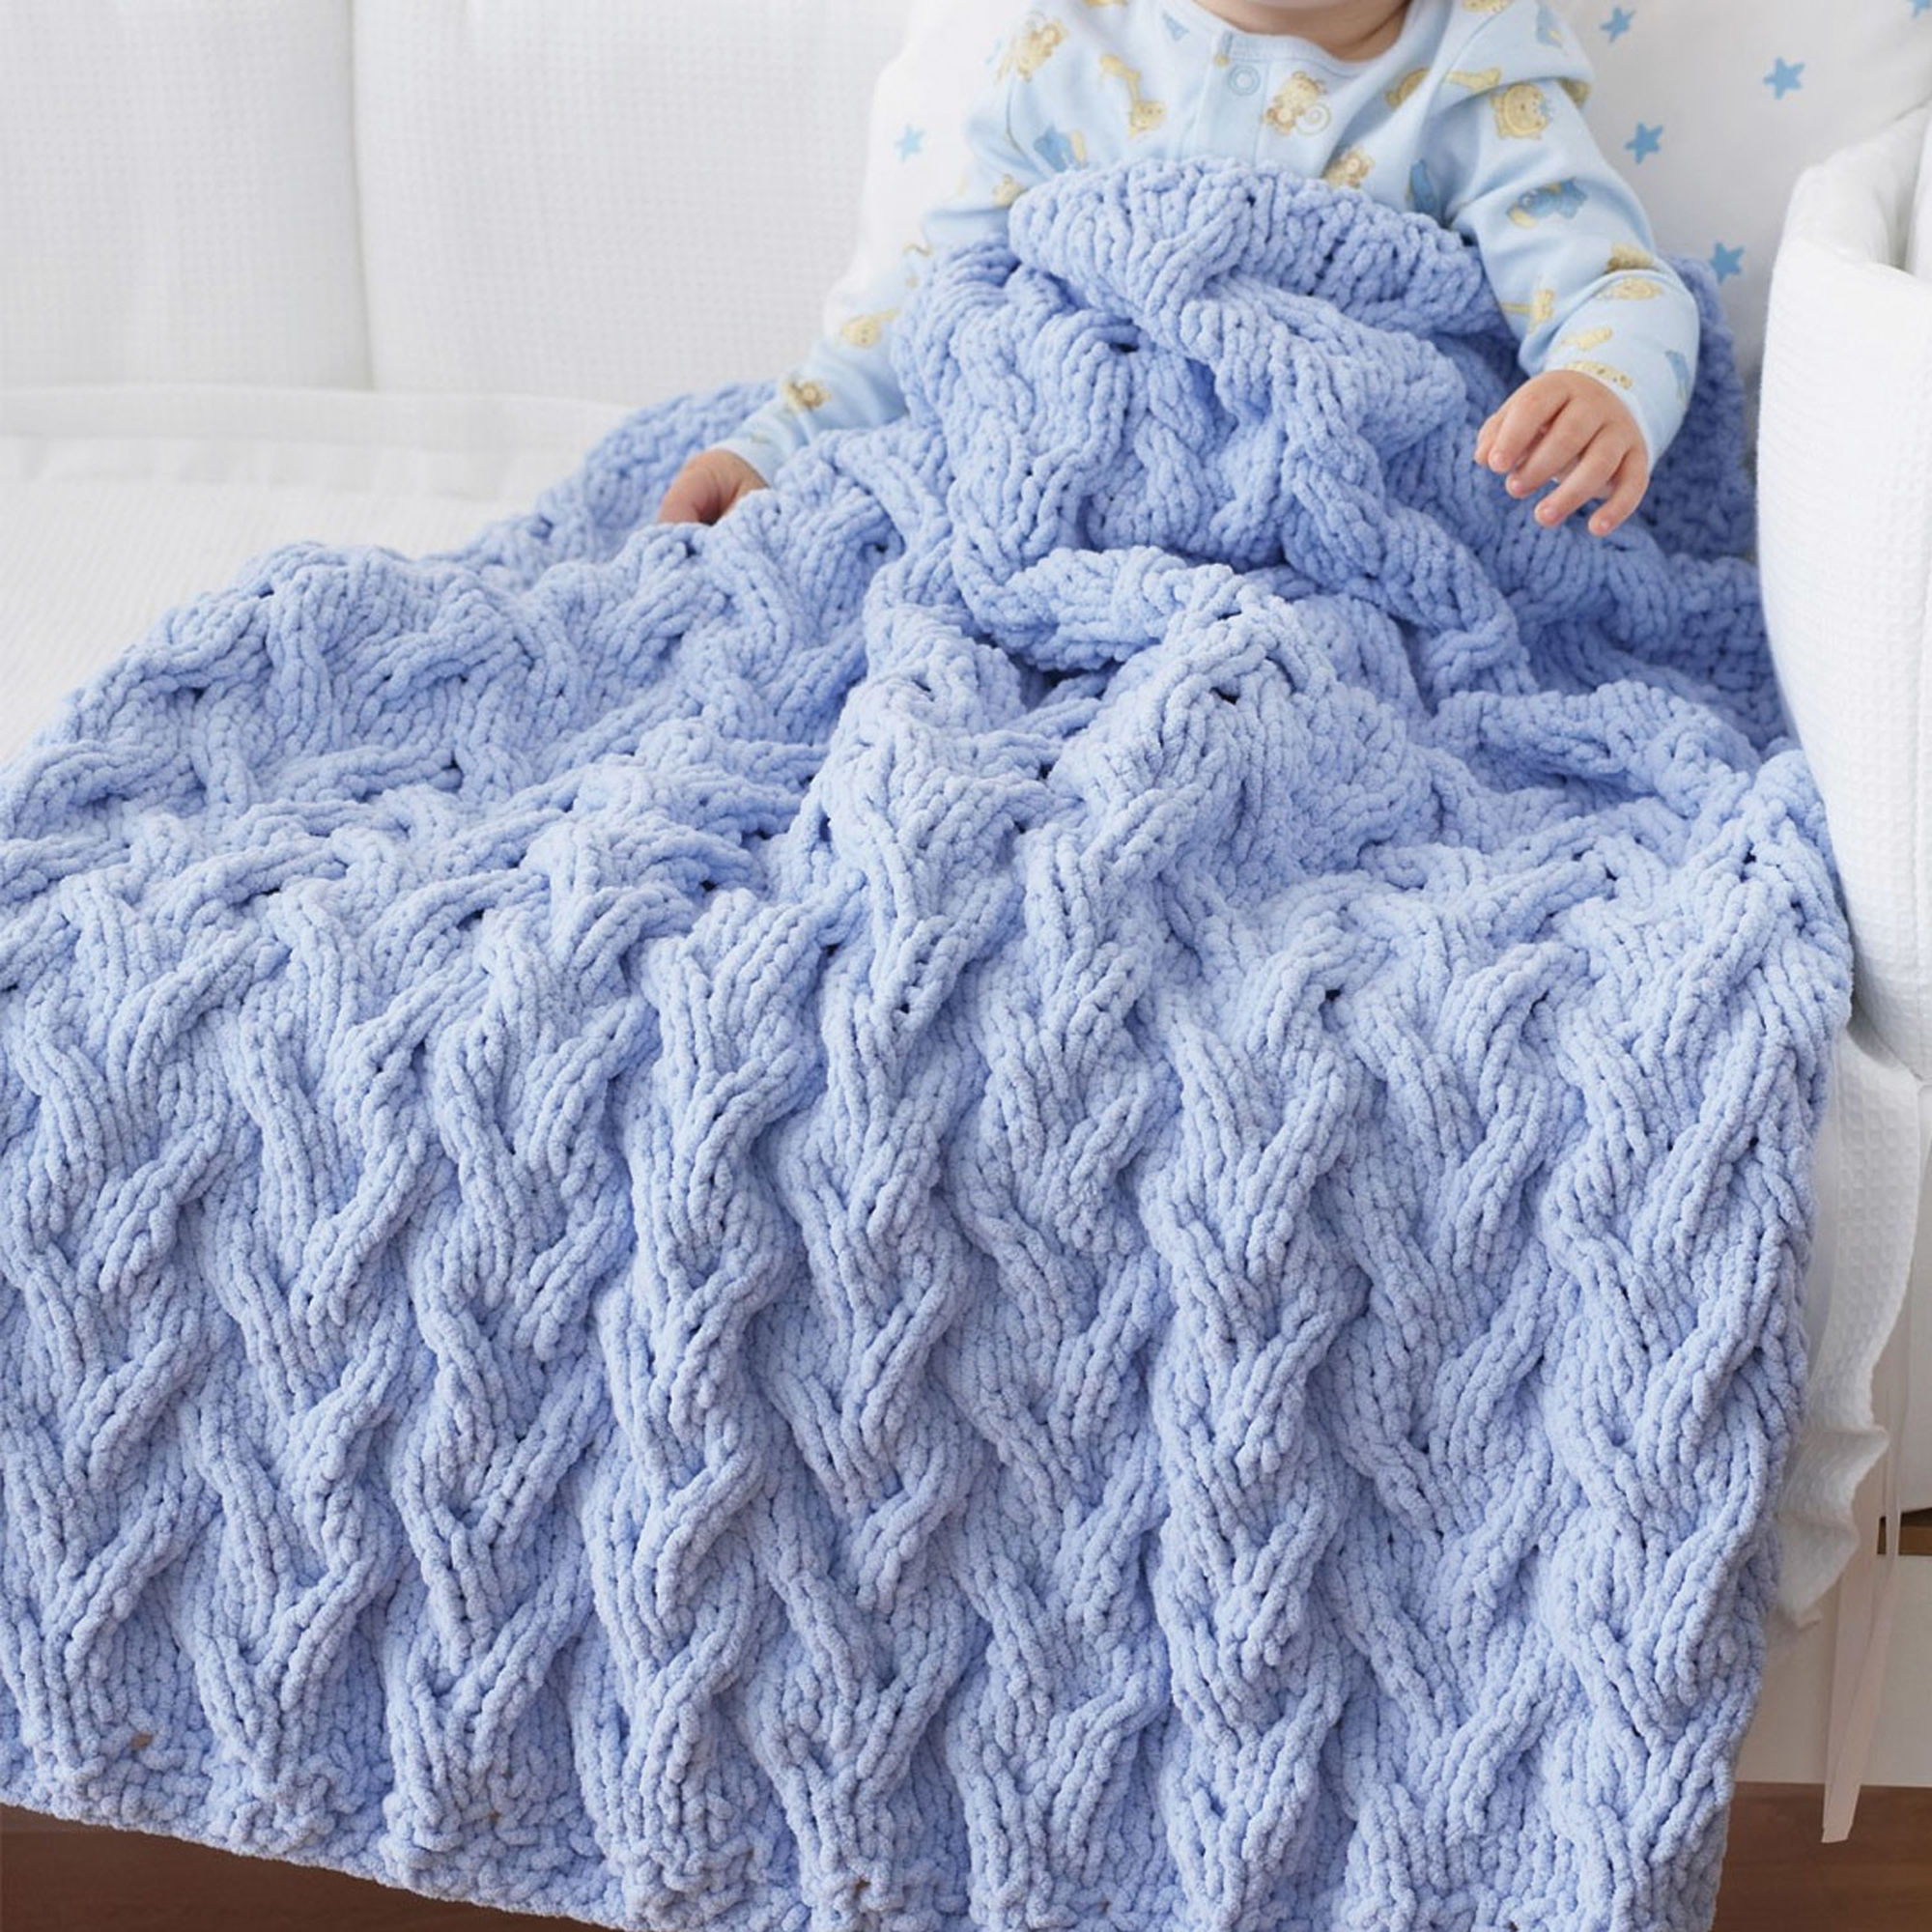 Free Knitting Afghan Patterns For Beginners Lovely Cabled Ba Blanket Free Knitting Pattern